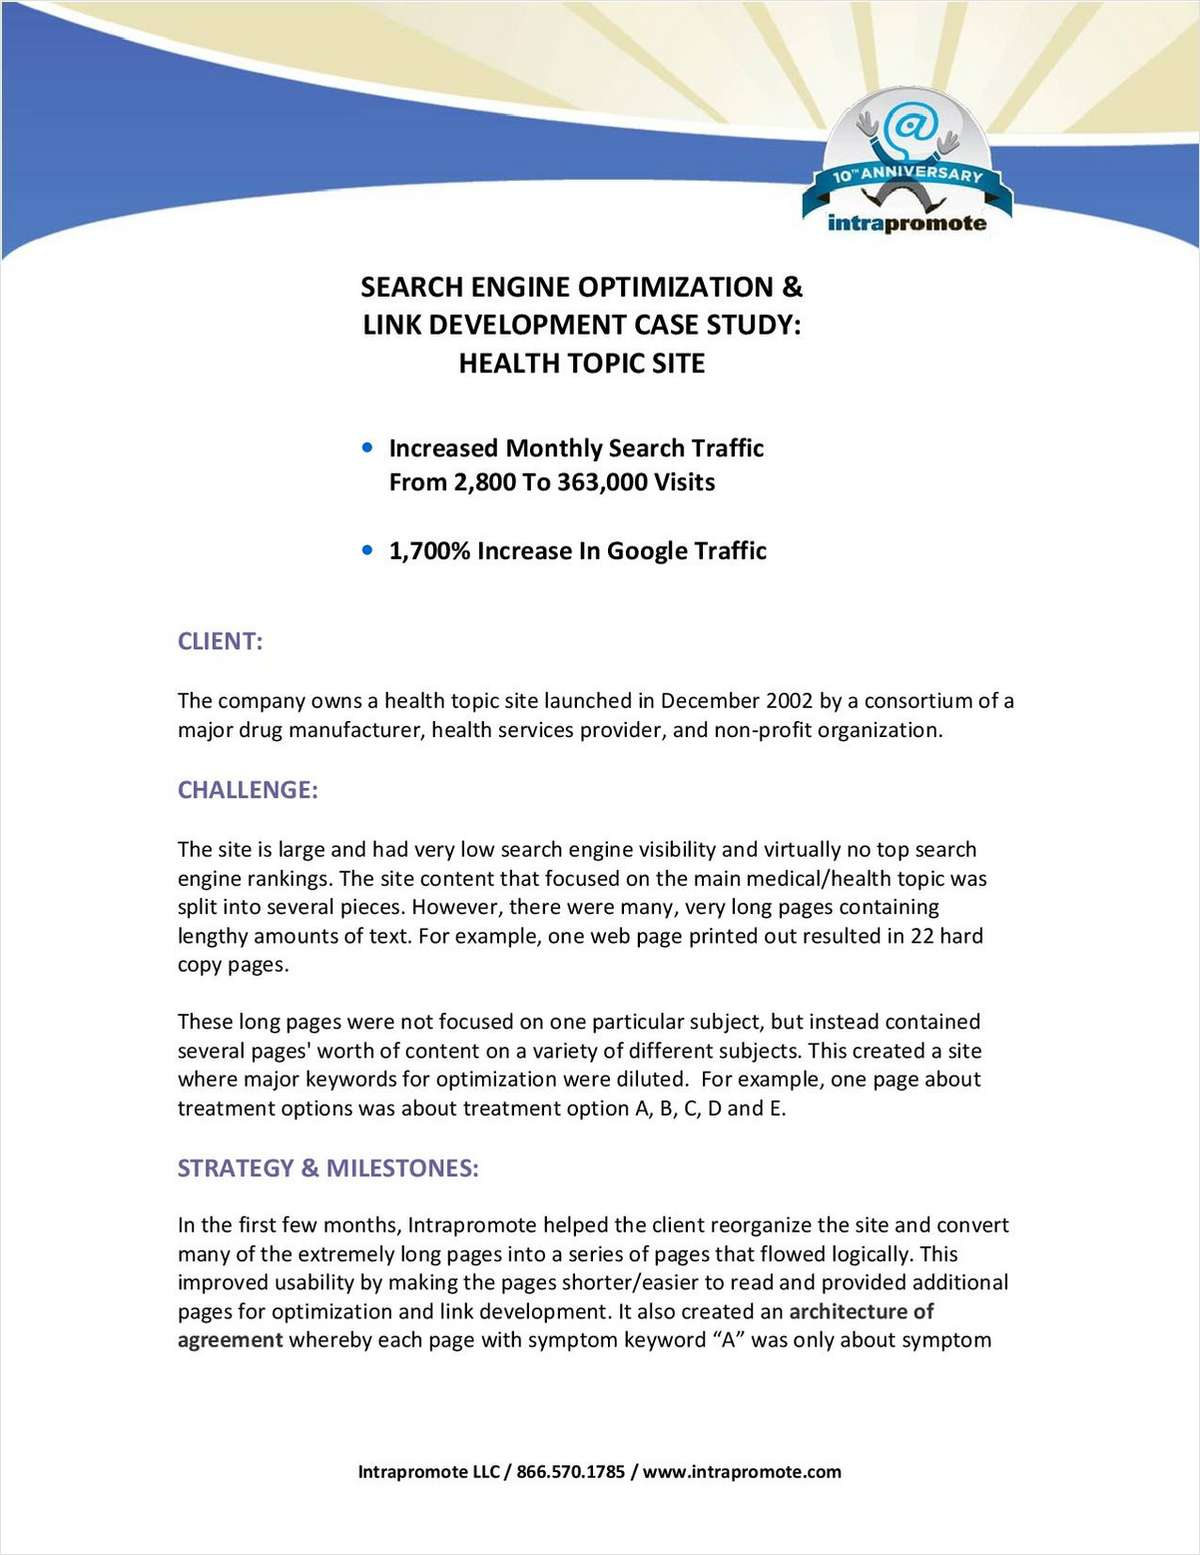 Case Study: Search Engine Optimization and Link Development Success Strategies